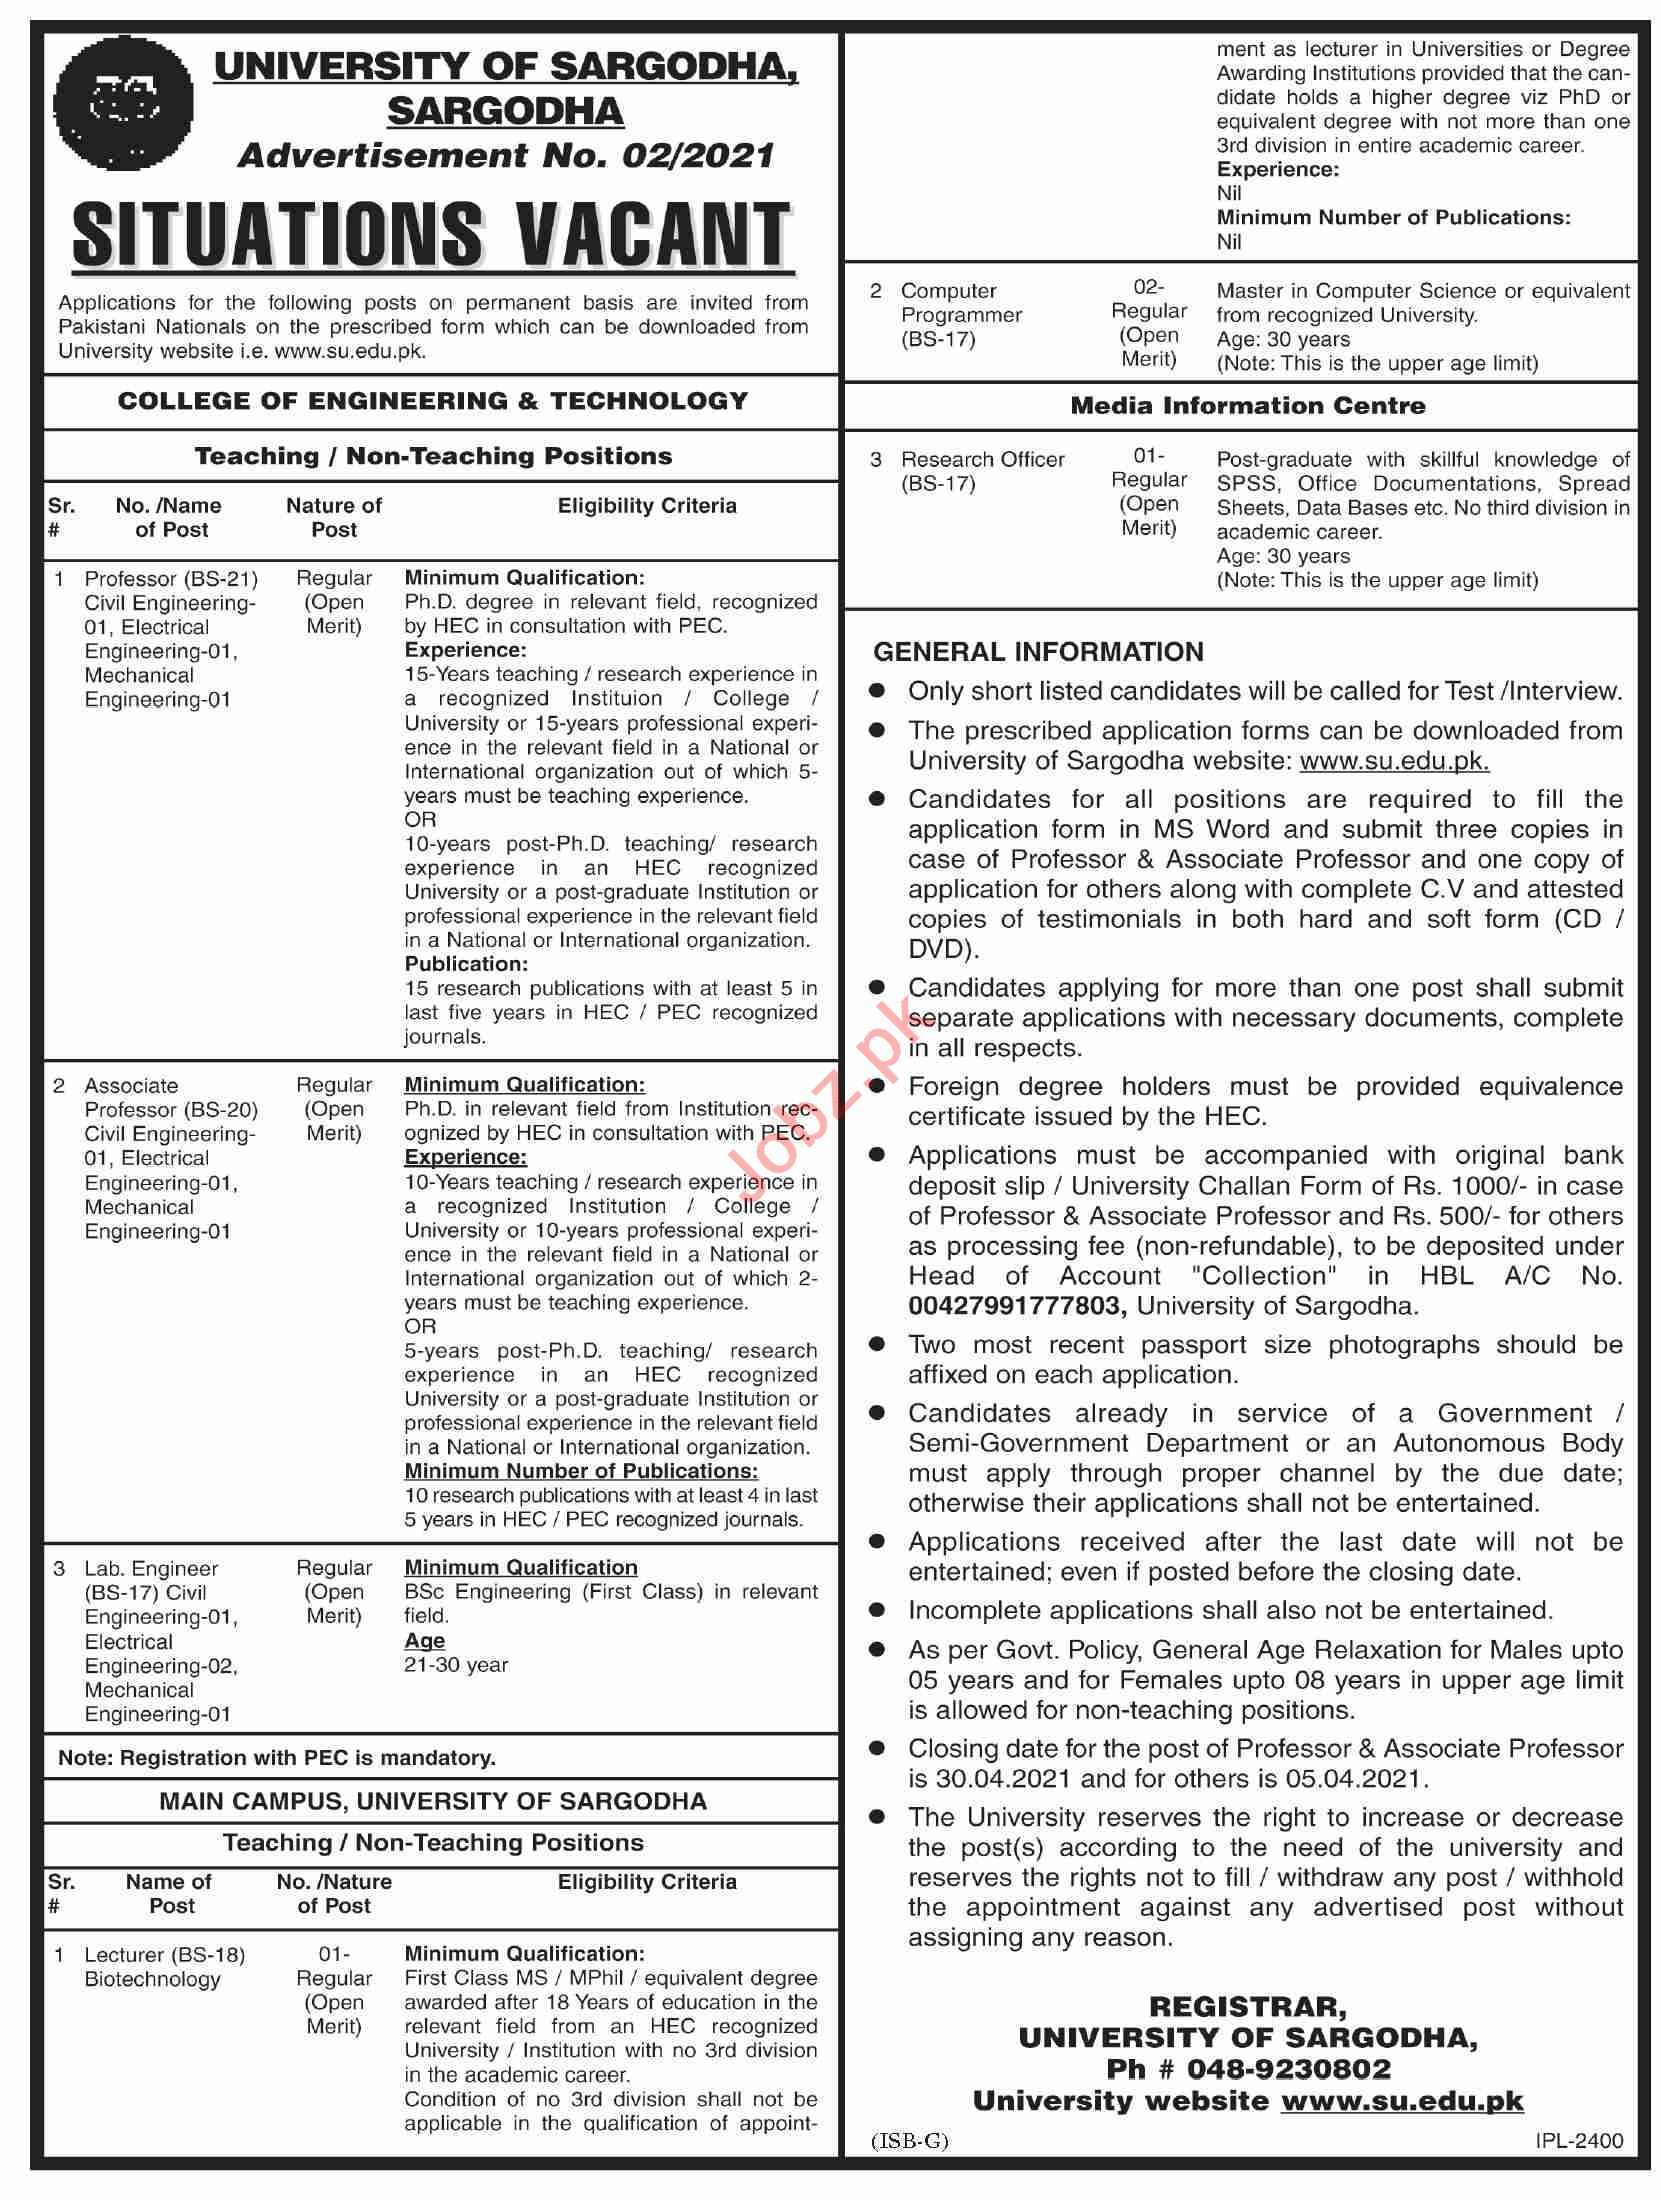 University of Sargodha Jobs 2021 for Professors & Lecturers